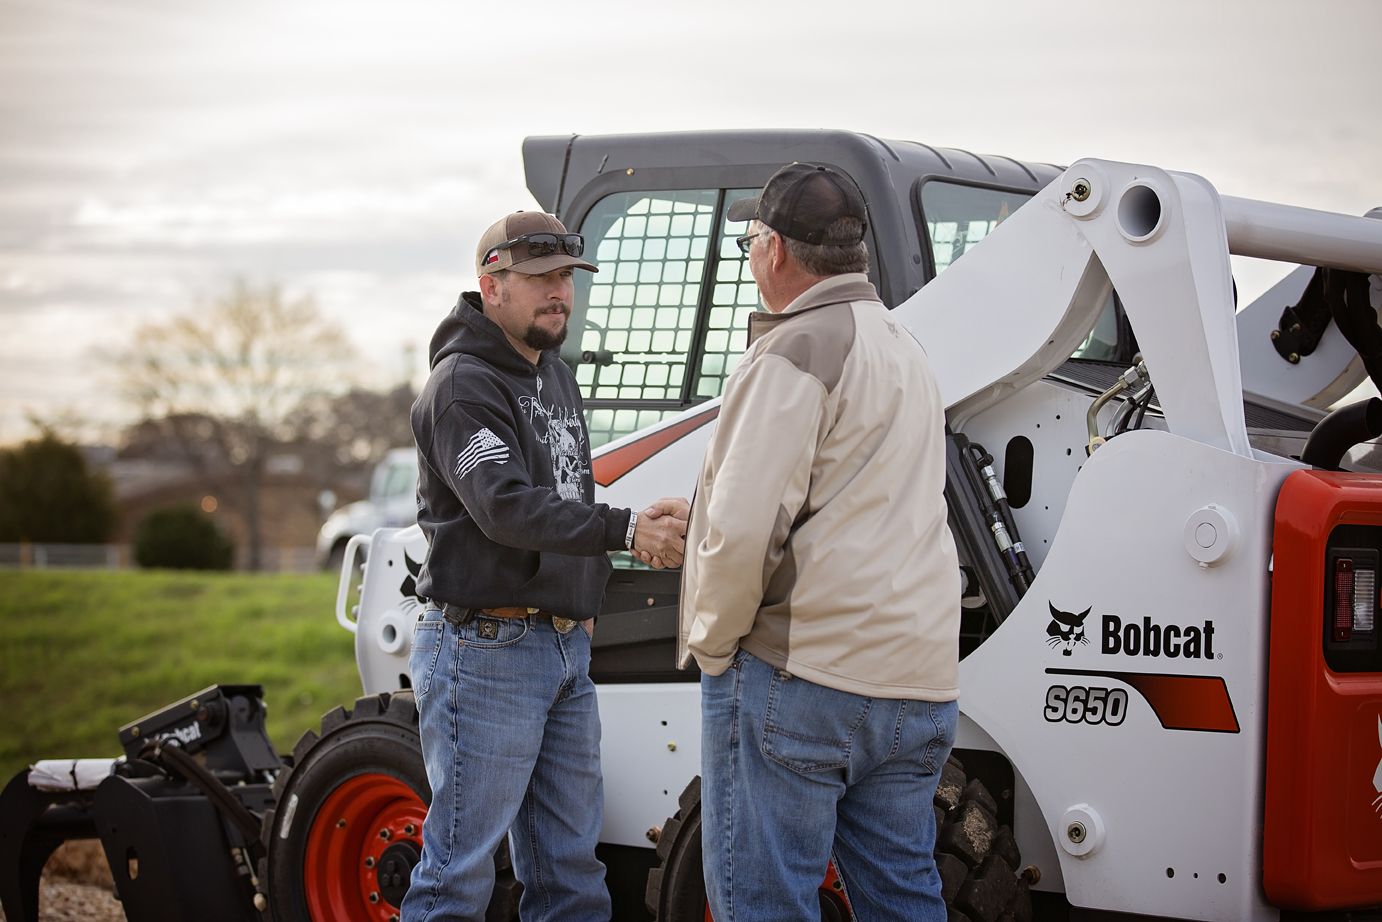 bobcat equipment exchange